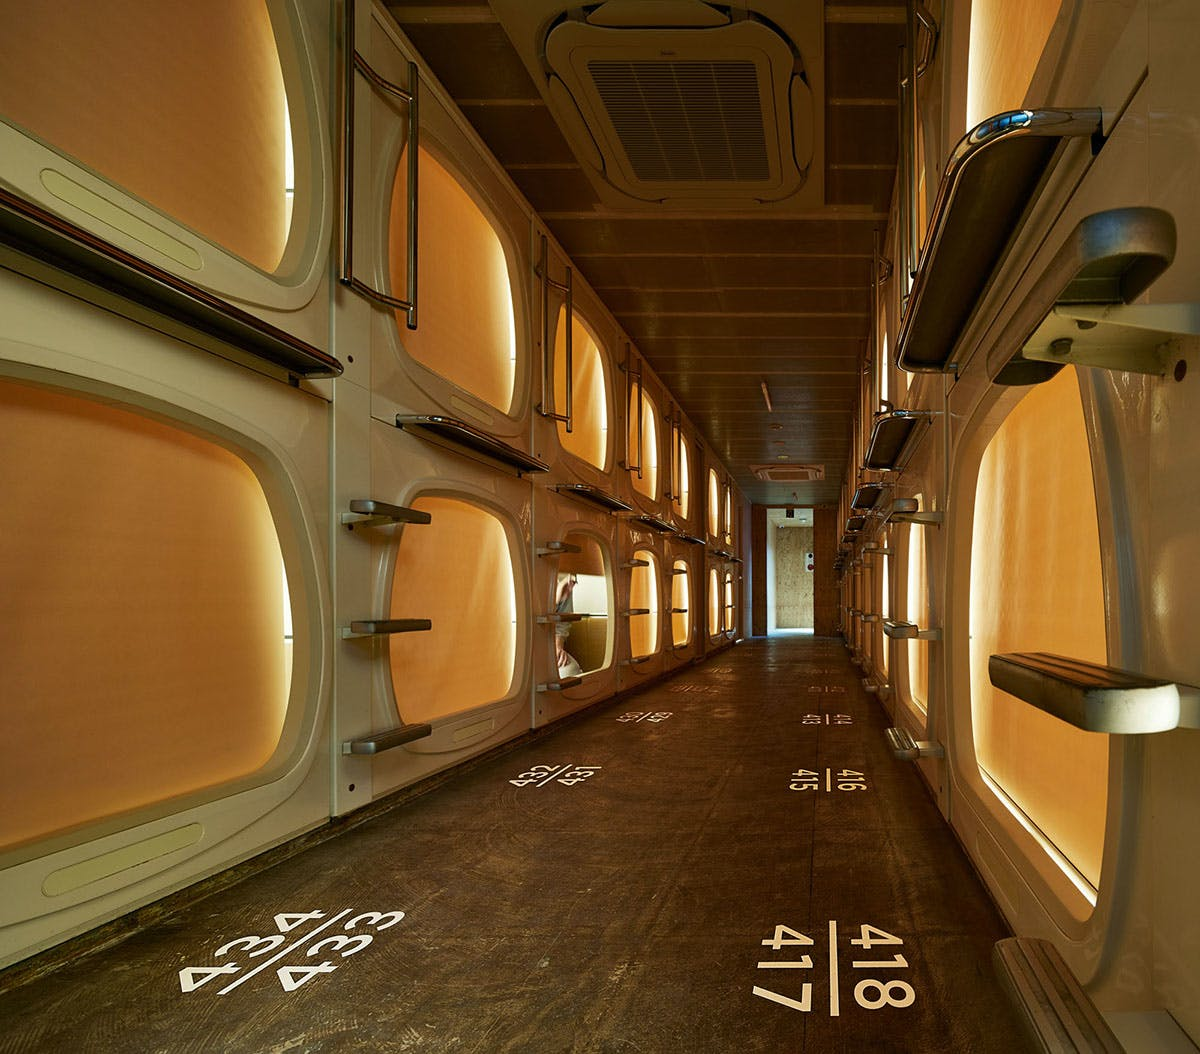 Japanese Capsule Hotel Gets A Scandinavian Spa Treatment From